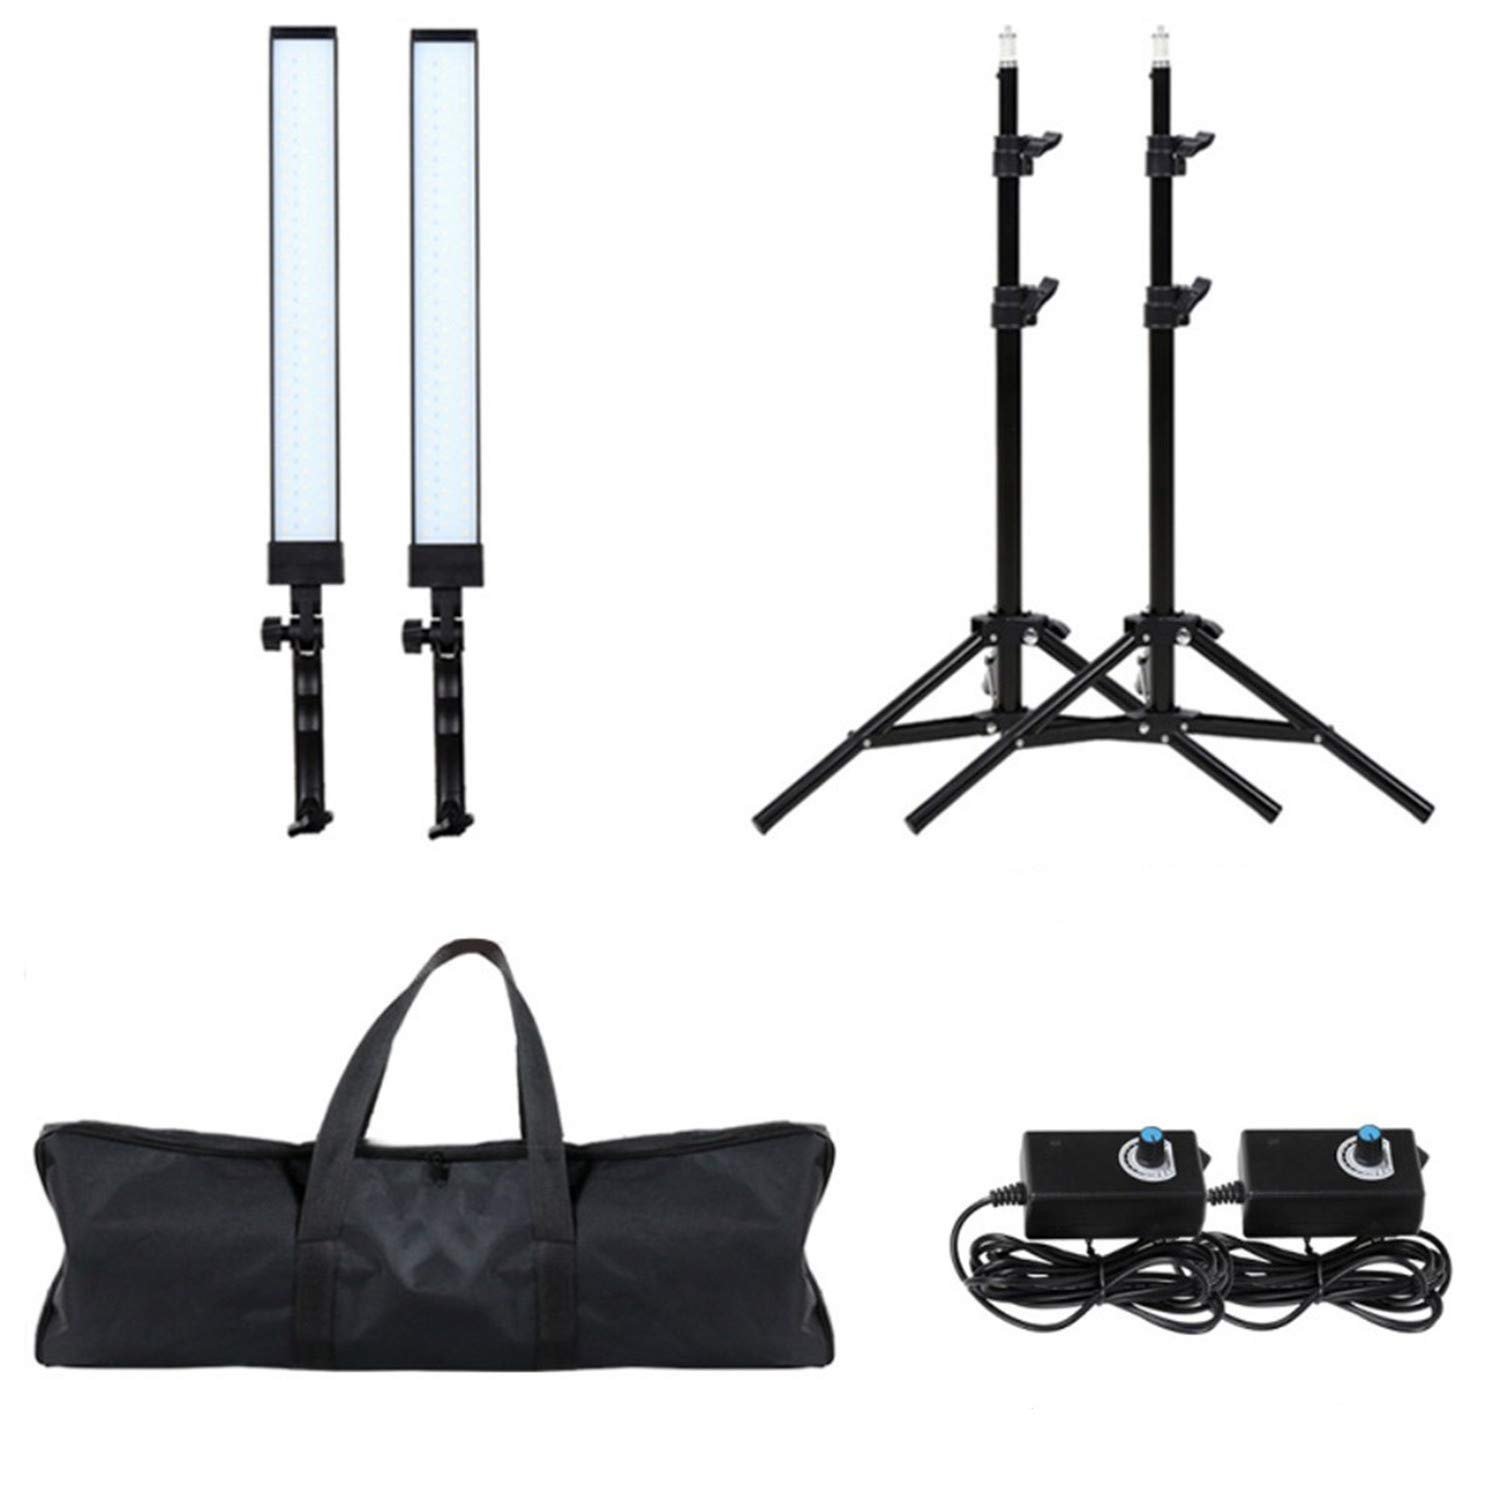 GIJUANRING LED Photography Dimmable Lighting Kit, 5600K Photo Studio Led Light Kit with Tripod Stand for Portrait Video and Shooting by GIJUANRING